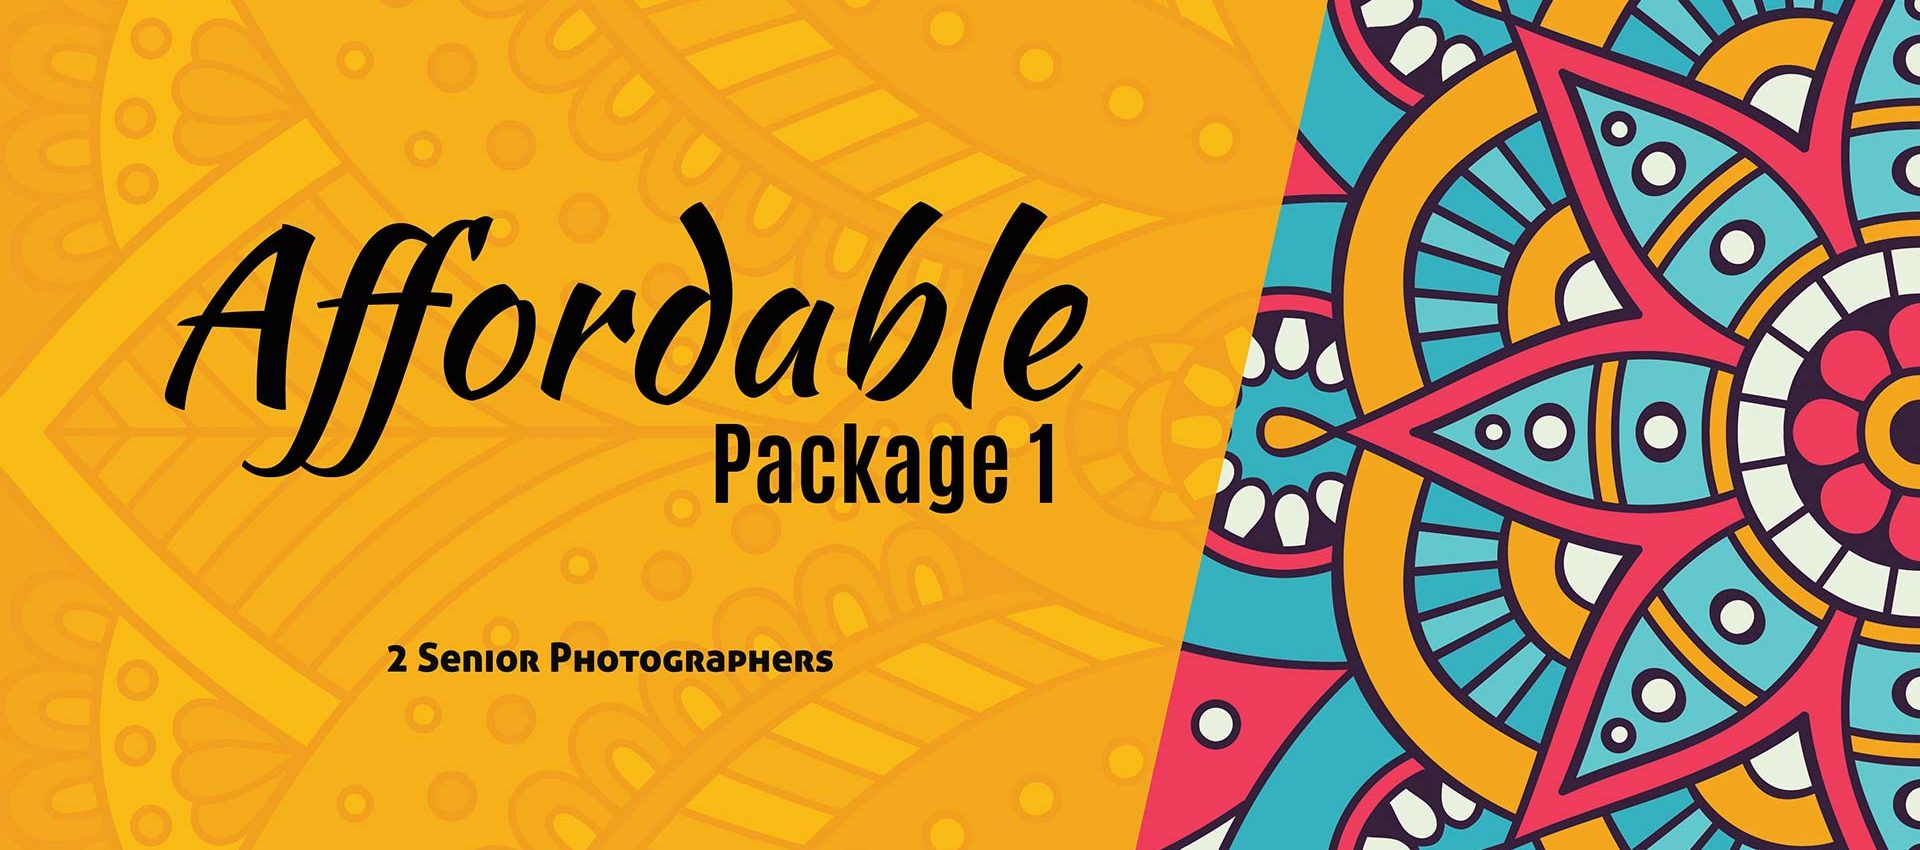 Affordable Package 1 Photo